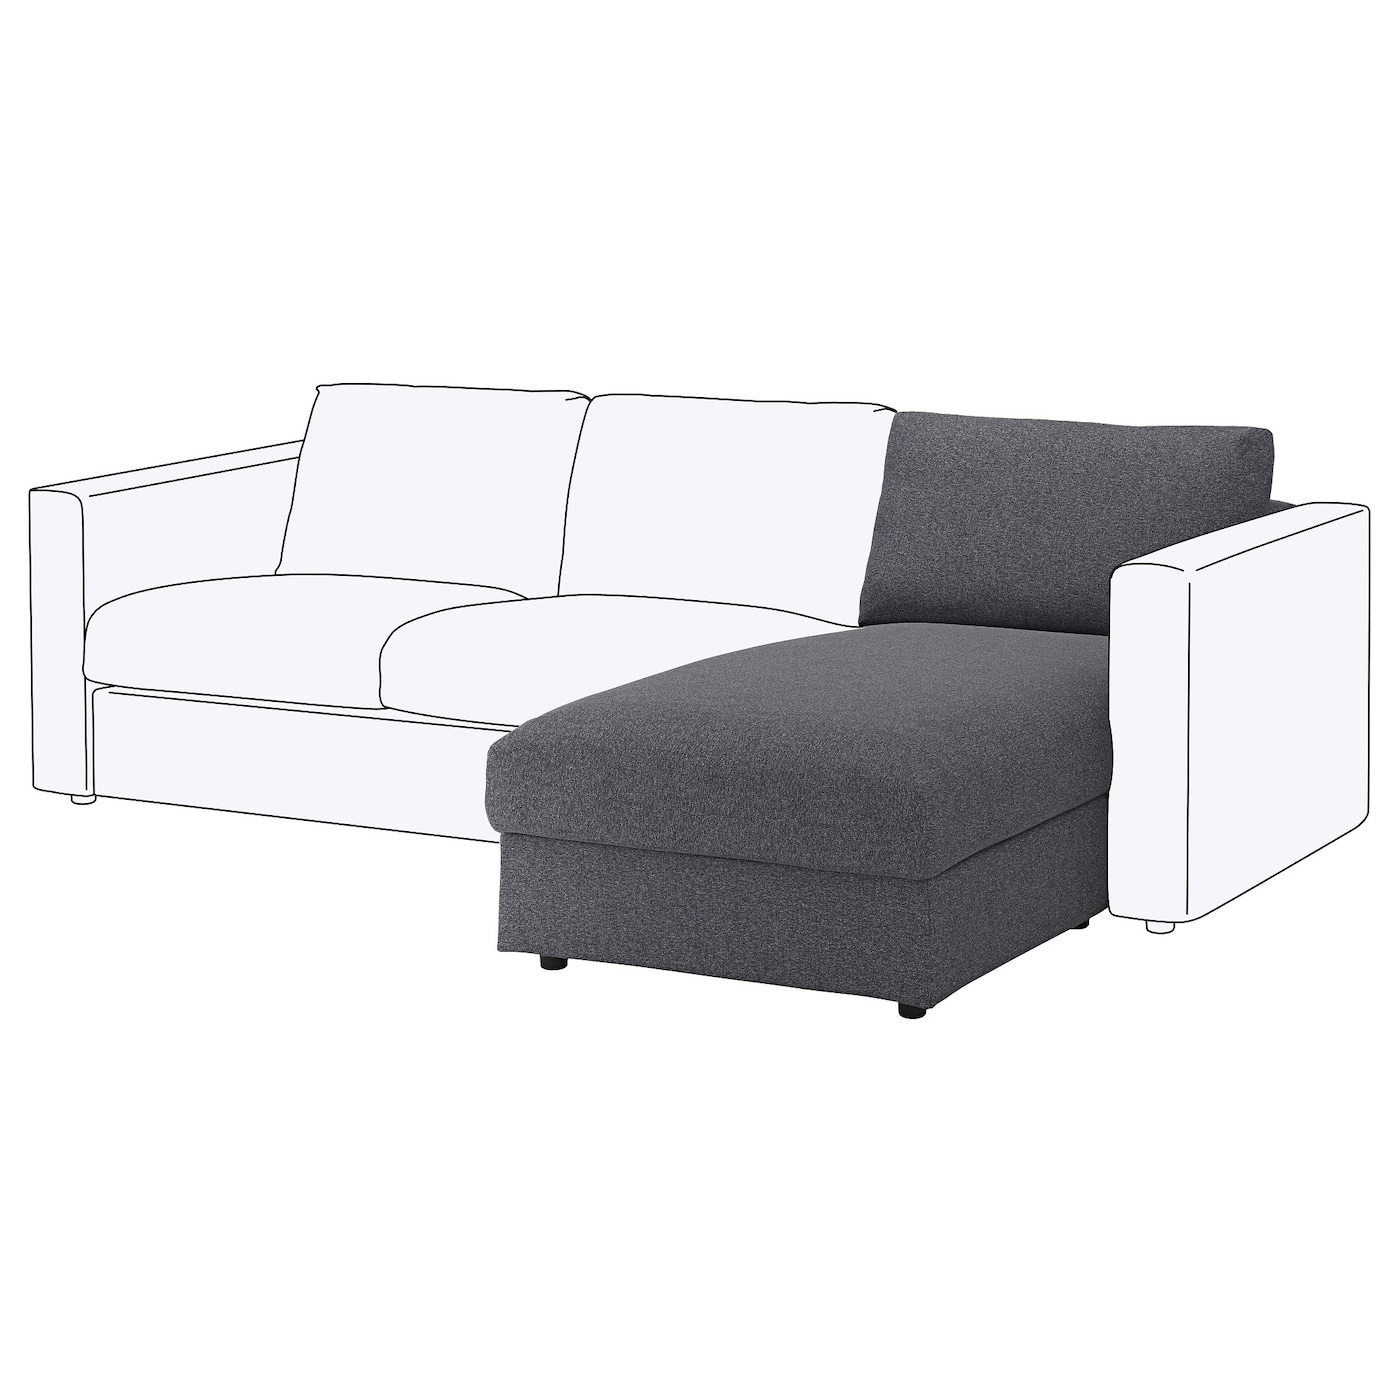 IKEA VIMLE chaise longue section 10 year guarantee. Read about the terms in the guarantee brochure.